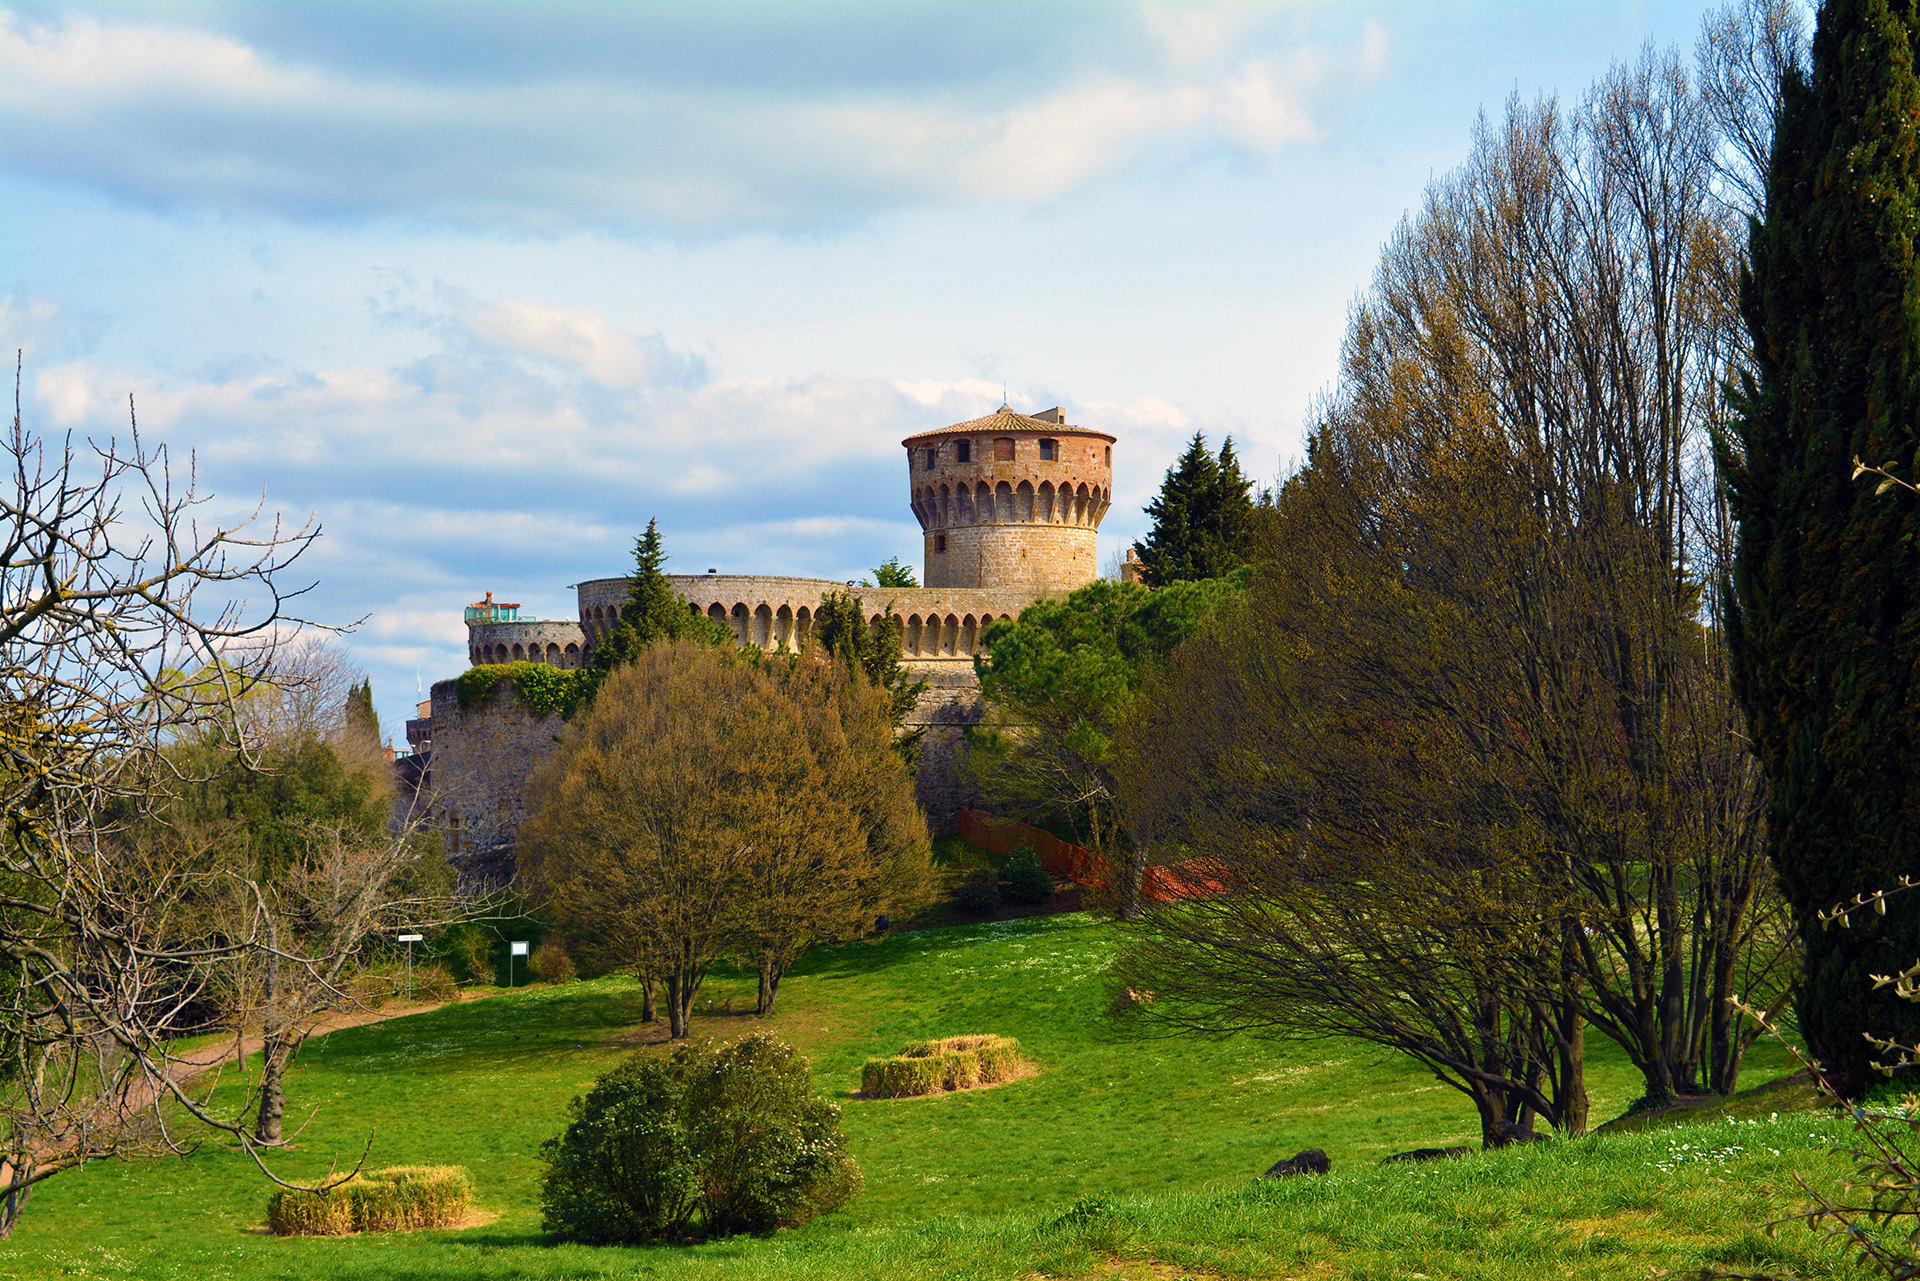 Maschio - a Medici fortress in Volterra, Tuscany. Nowadays it is used as a prison.